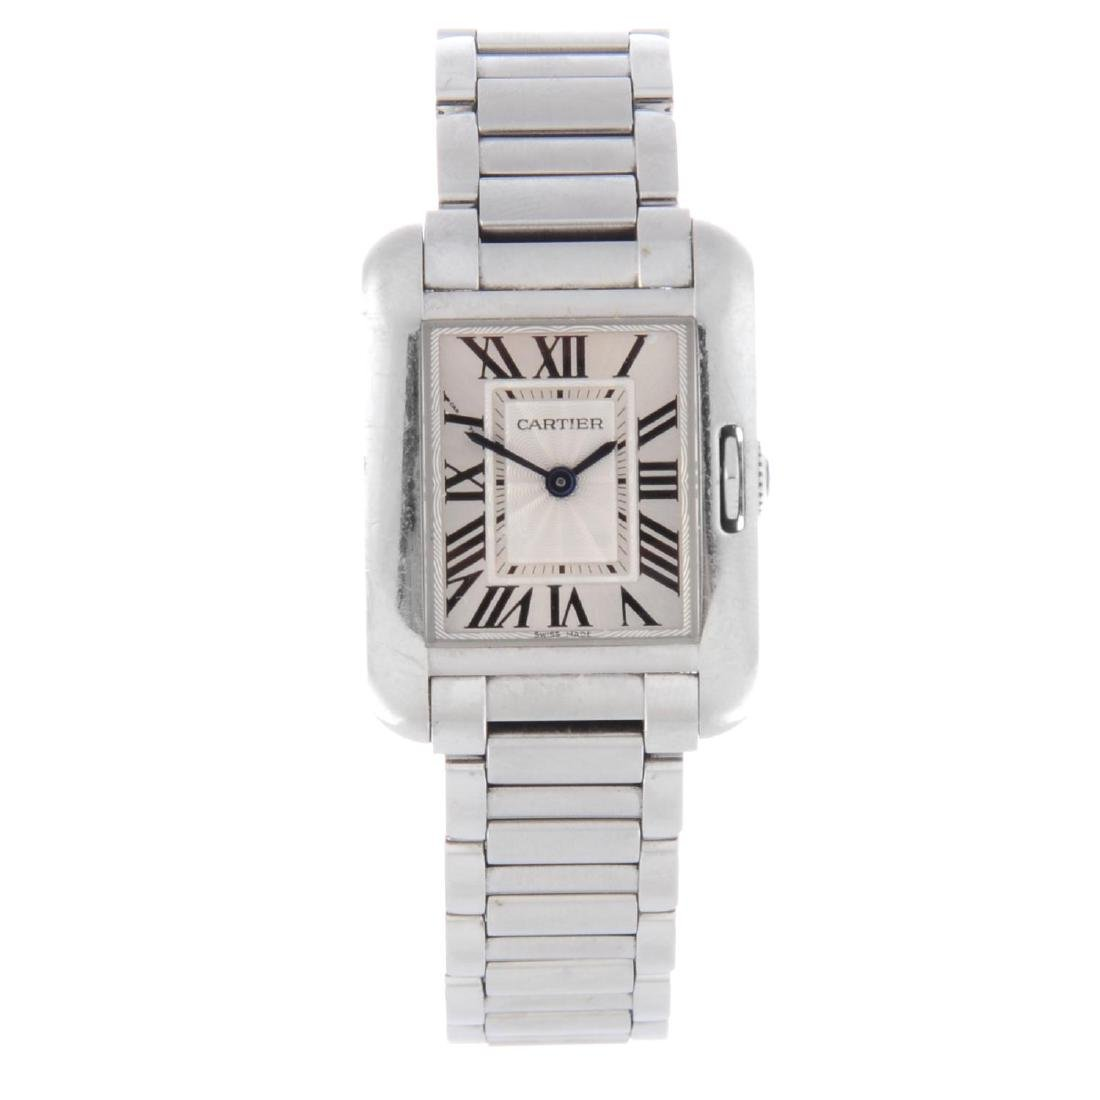 CARTIER - a Tank Anglaise bracelet watch. Stainless